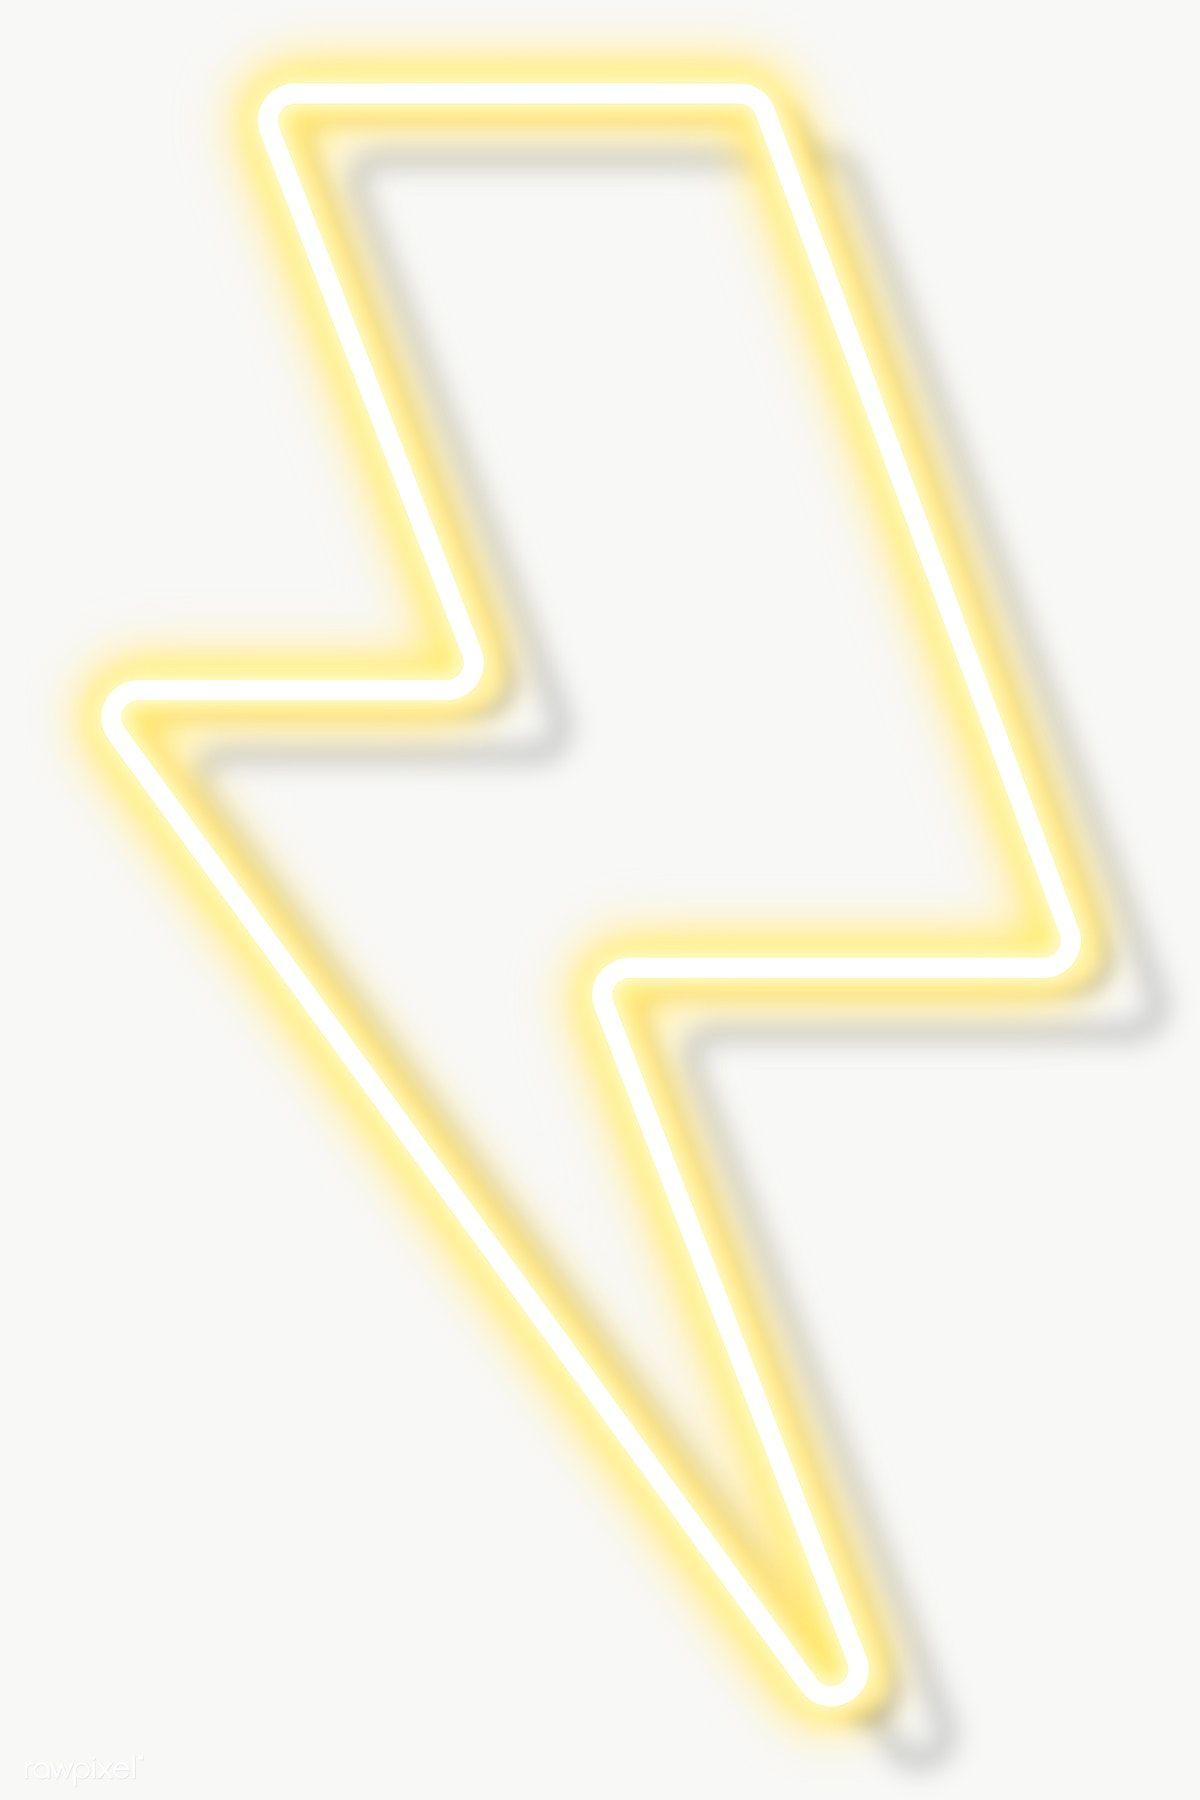 Download Premium Png Of Yellow Neon Lightning Sign Transparent Png